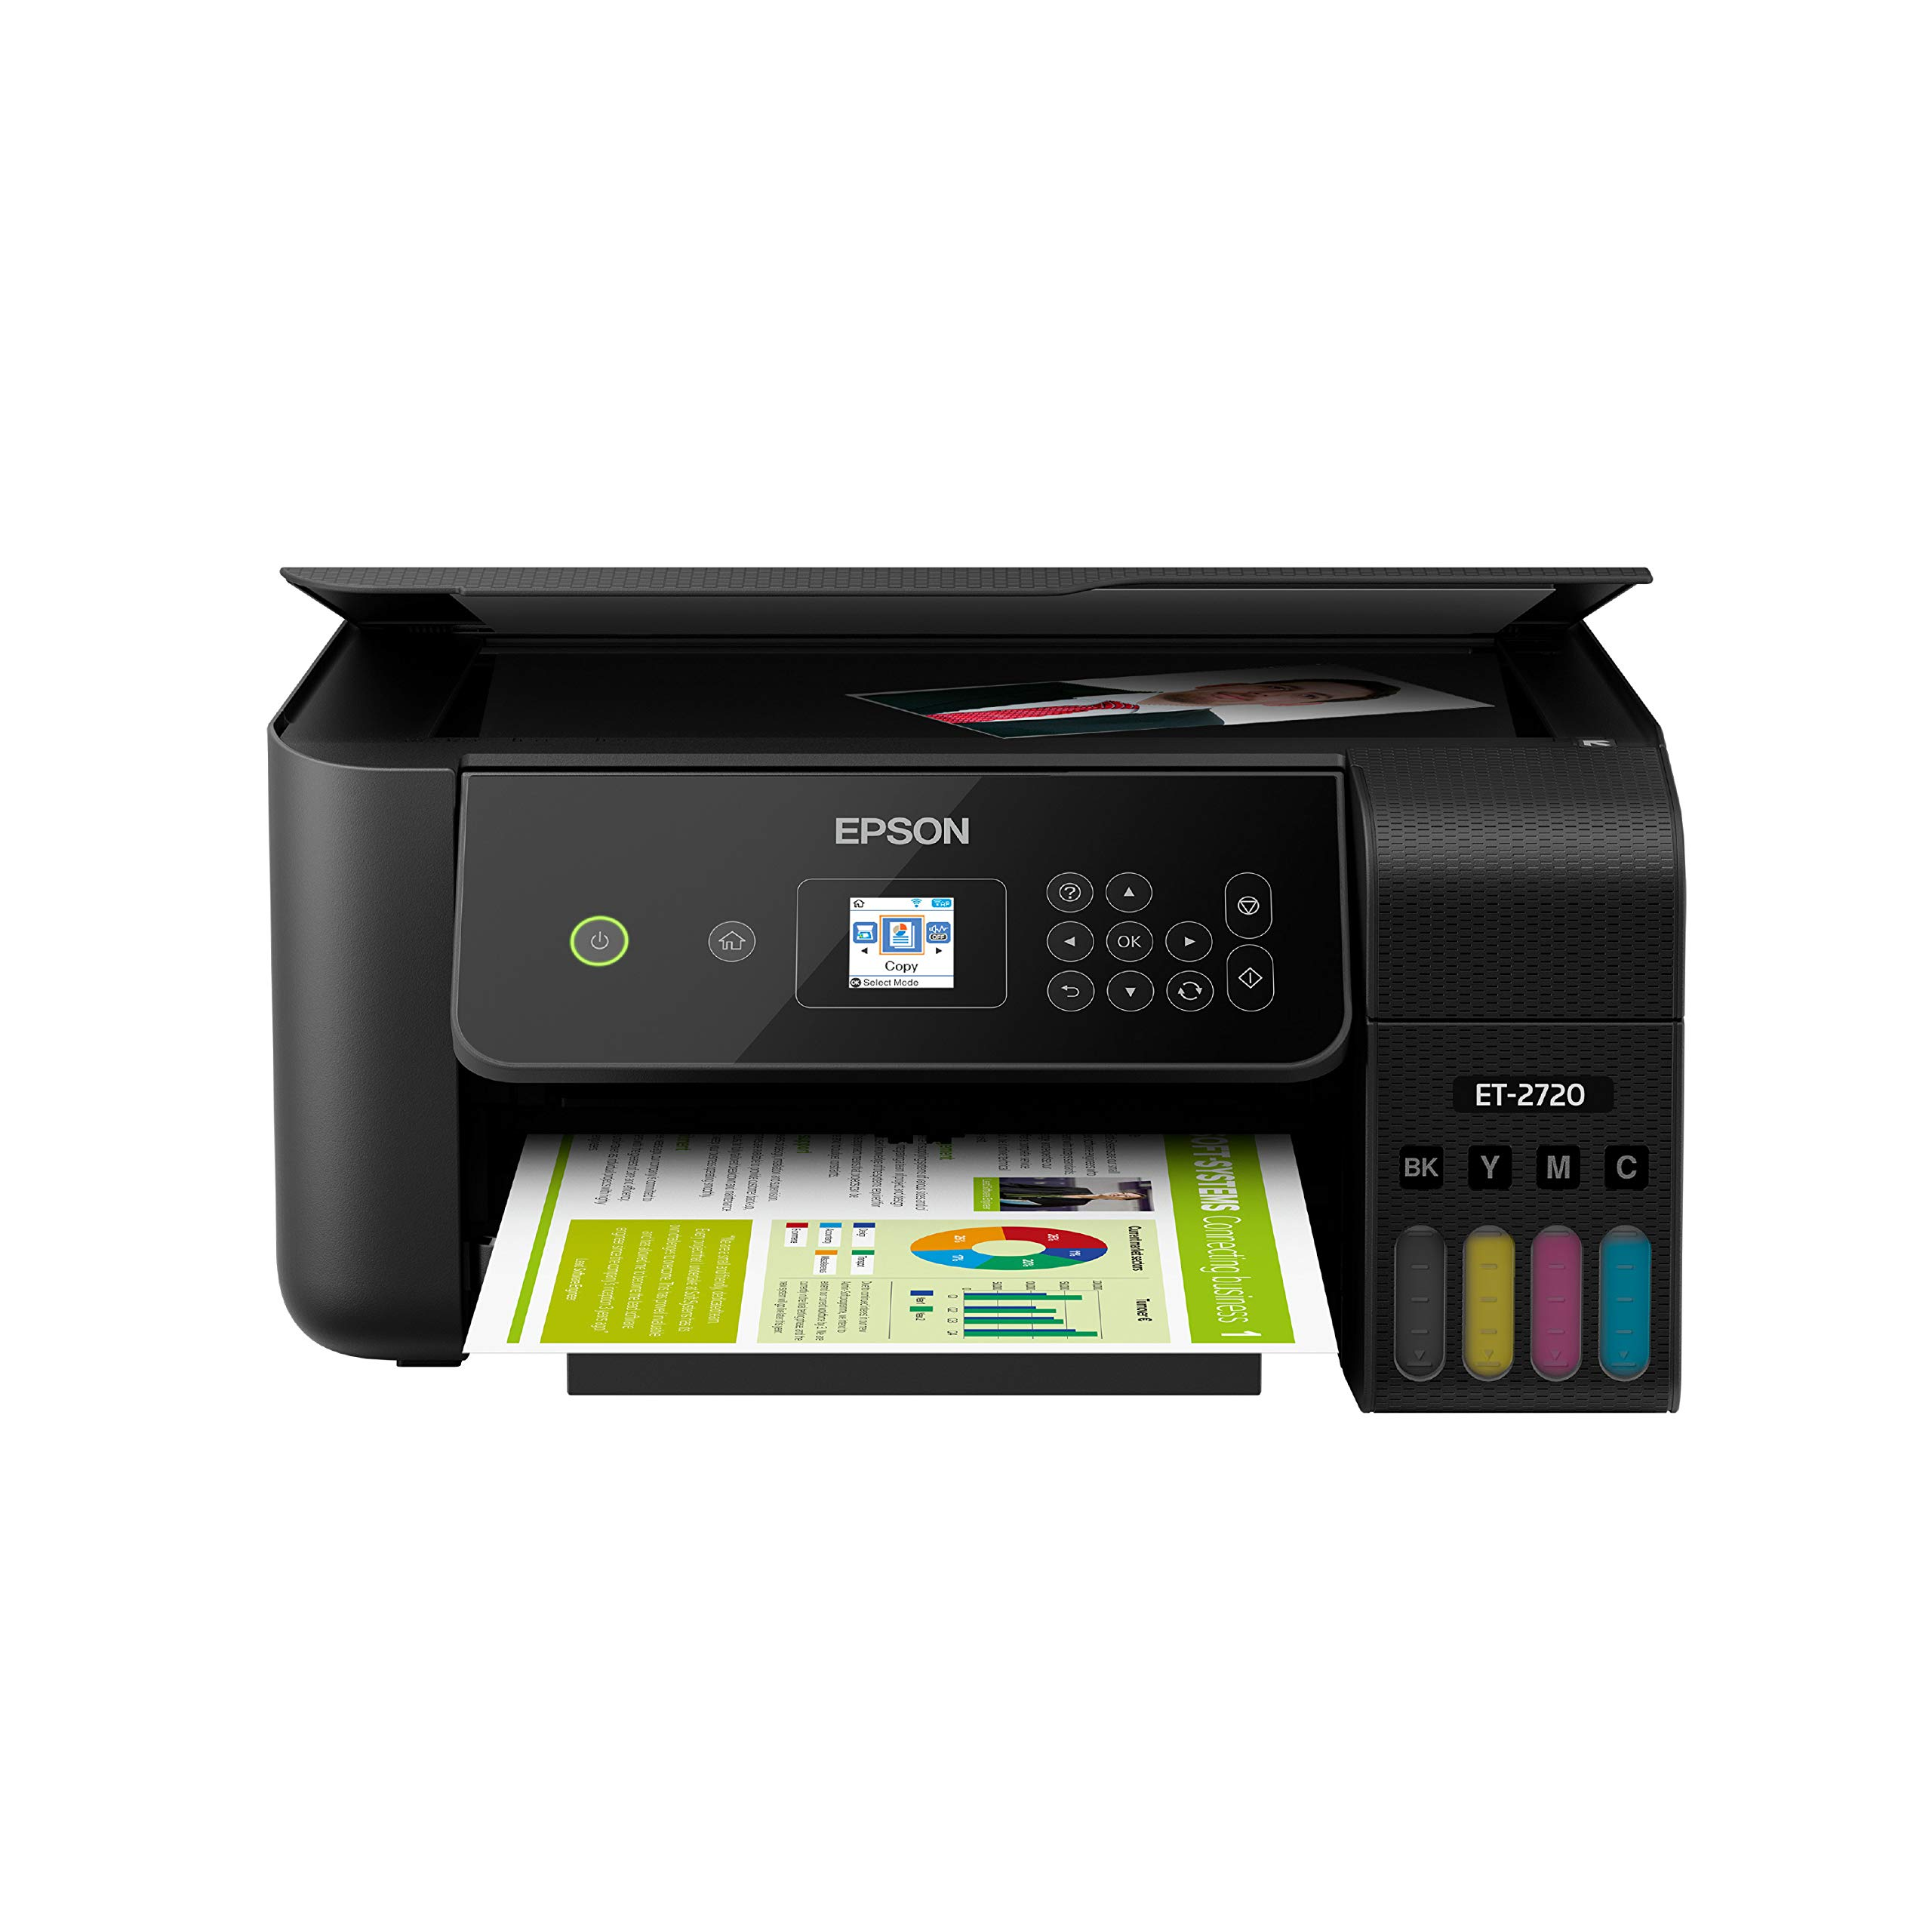 Epson EcoTank ET-2720 Wireless Color All-in-One Supertank Printer with Scanner and Copier - Black by Epson (Image #1)